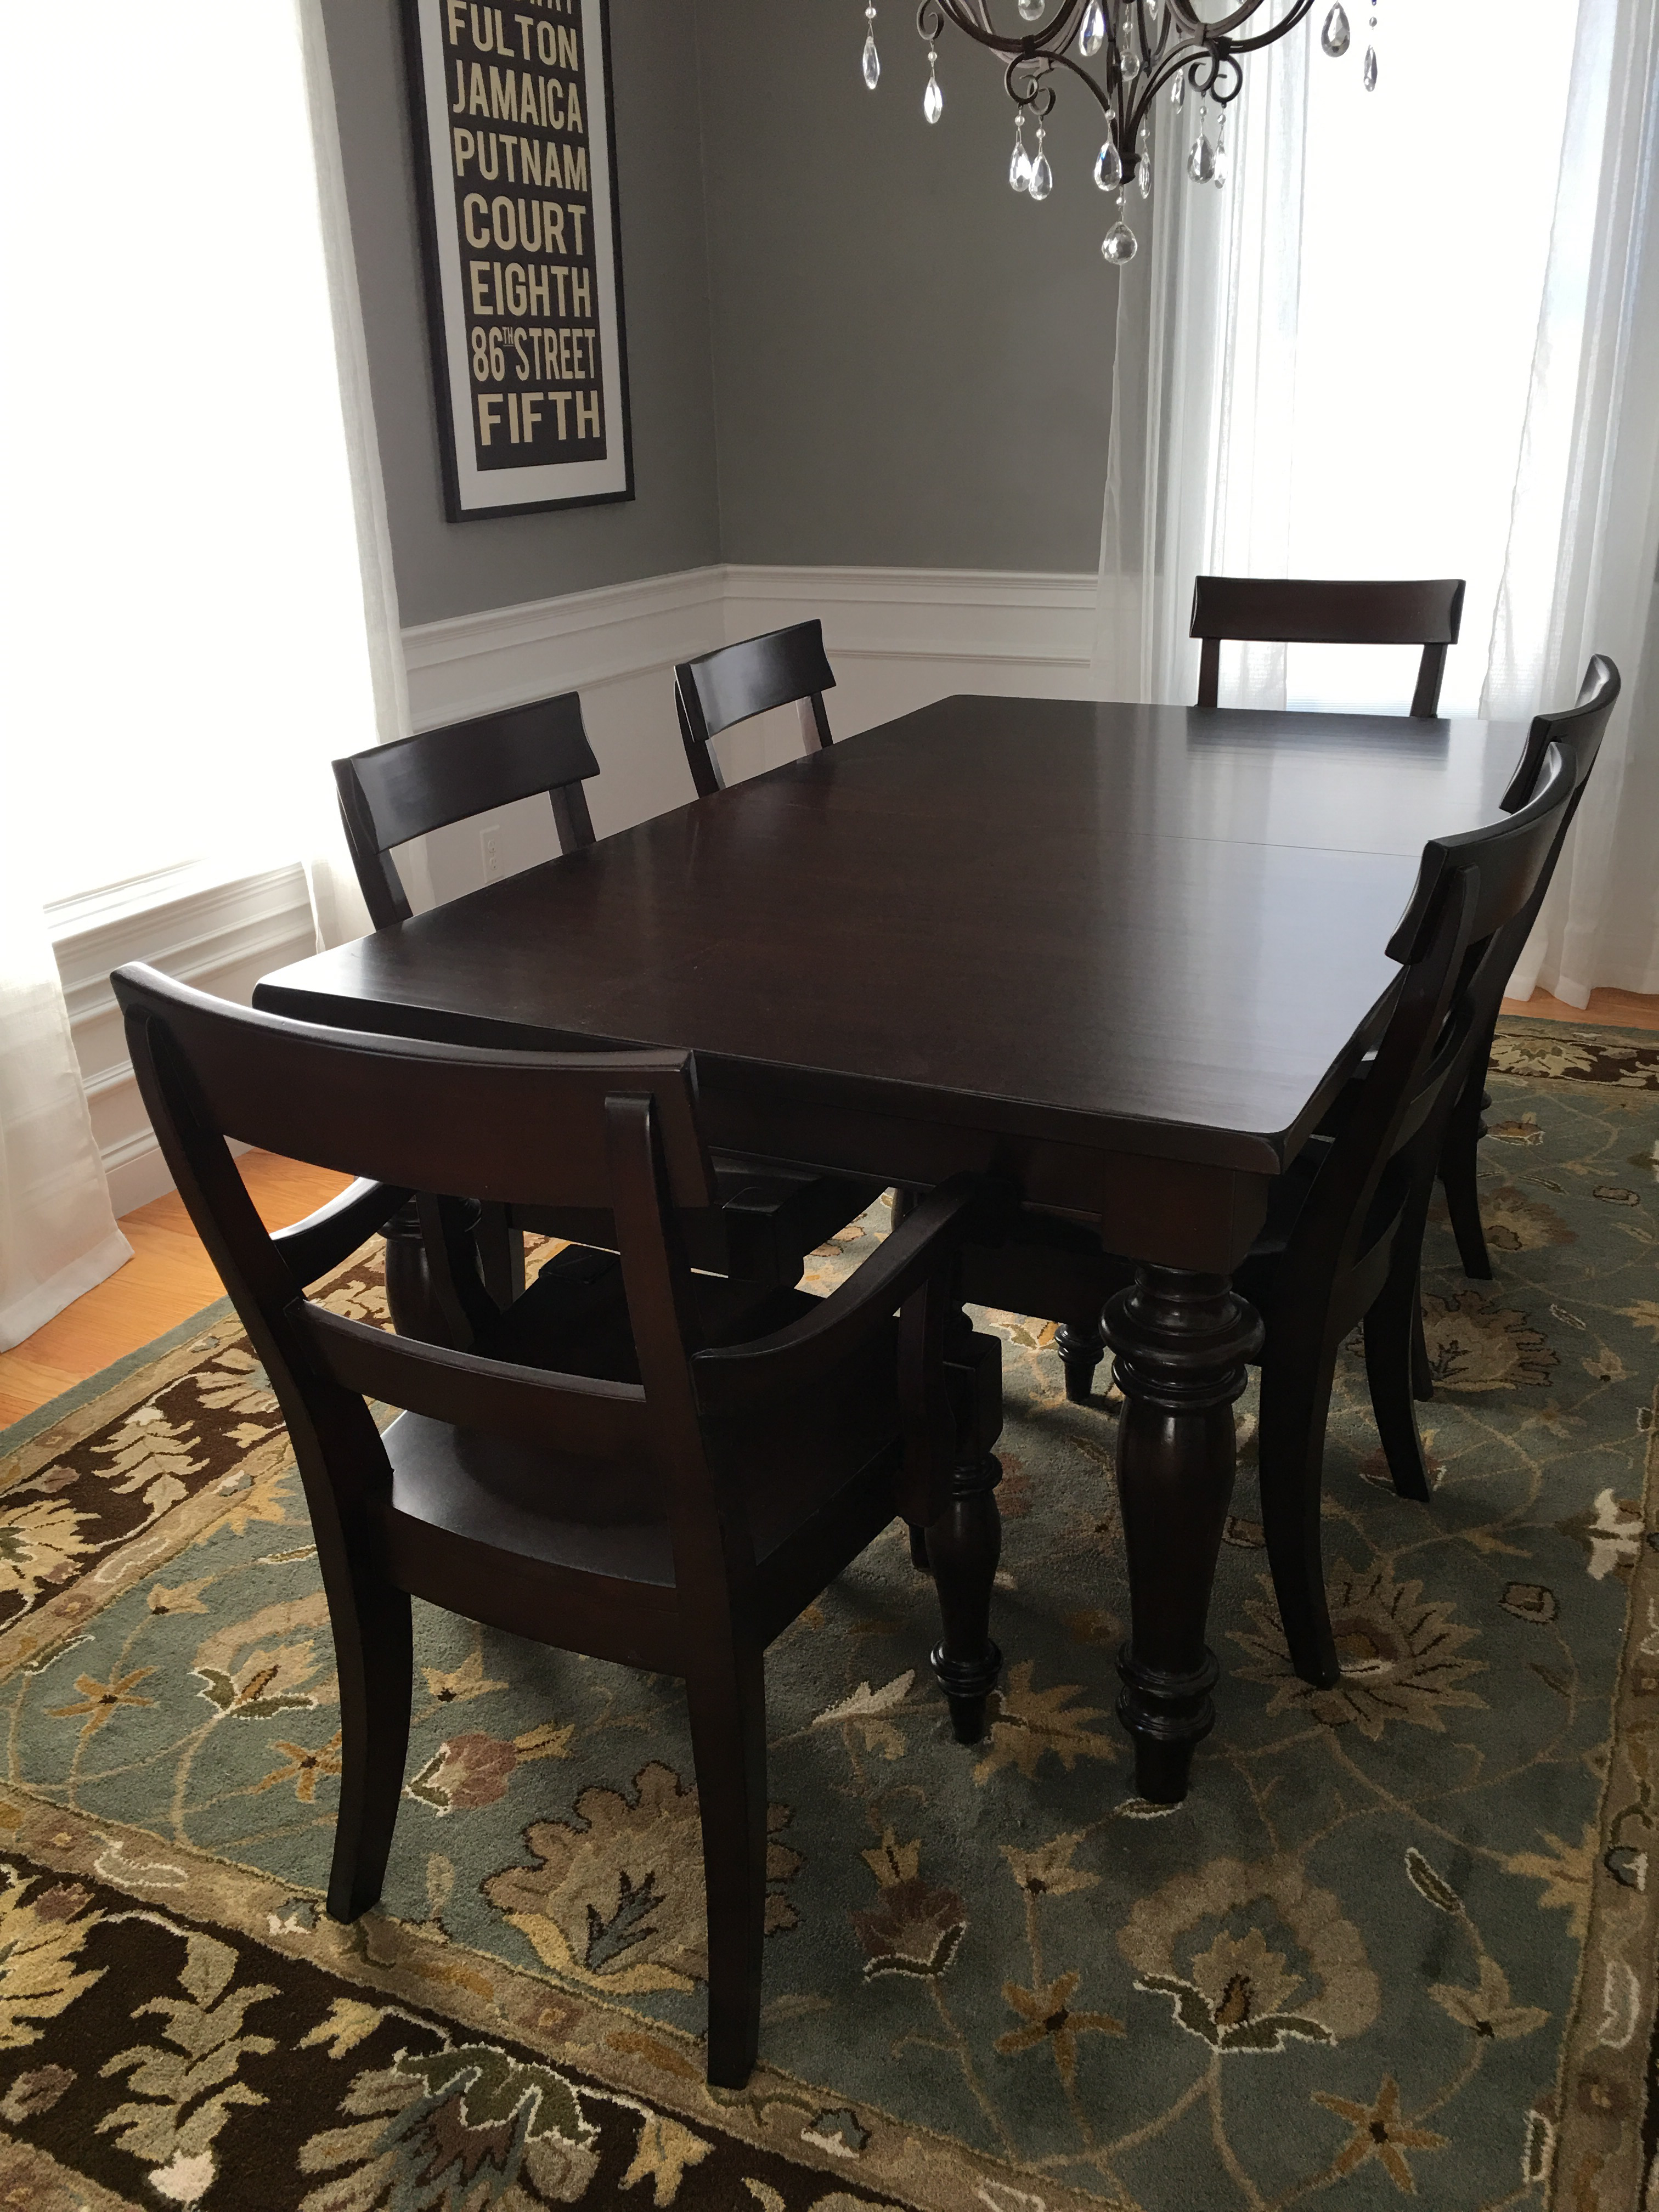 This Pottery Barn Montego Dining Table Comes With 6 Chairs. It Has Been In  Our